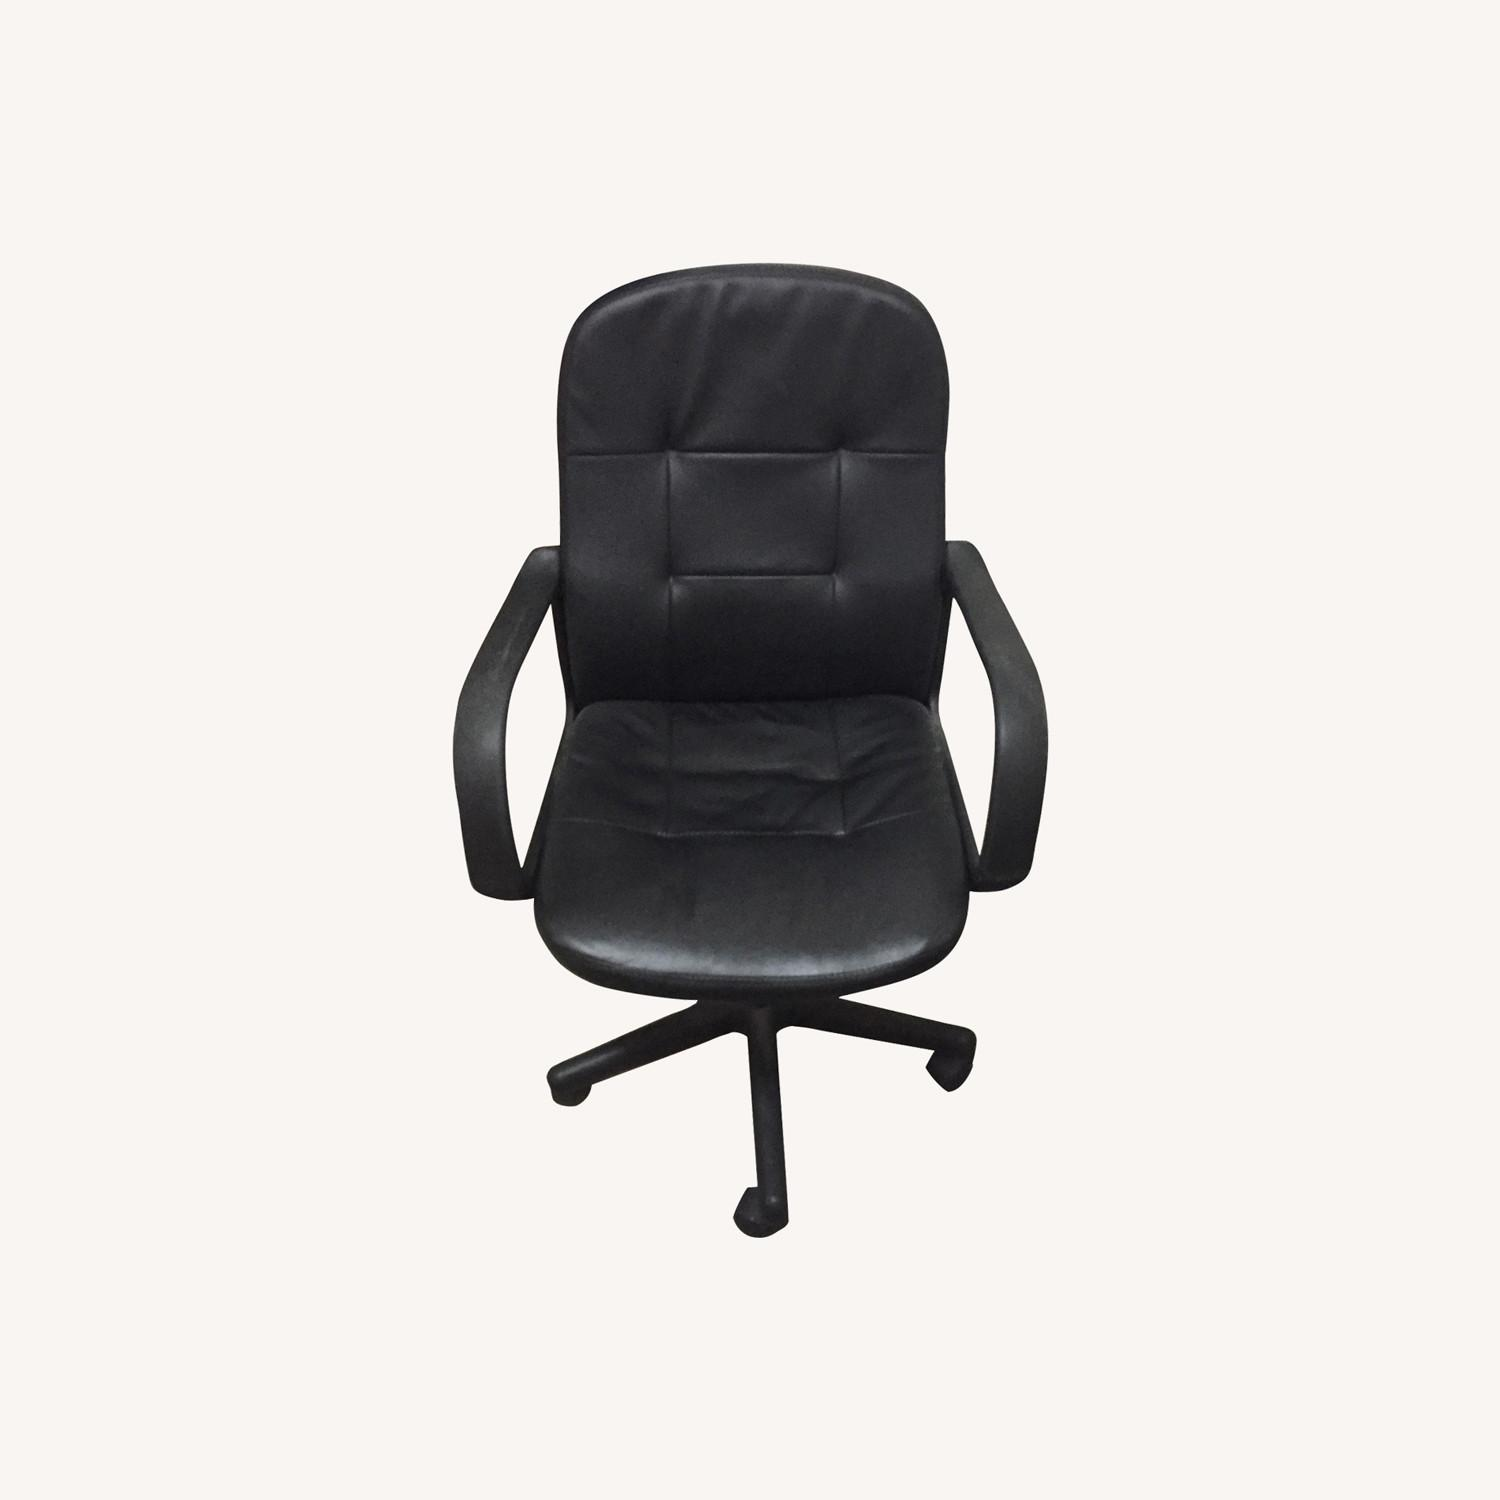 Comfortable Black Office Chair - image-0